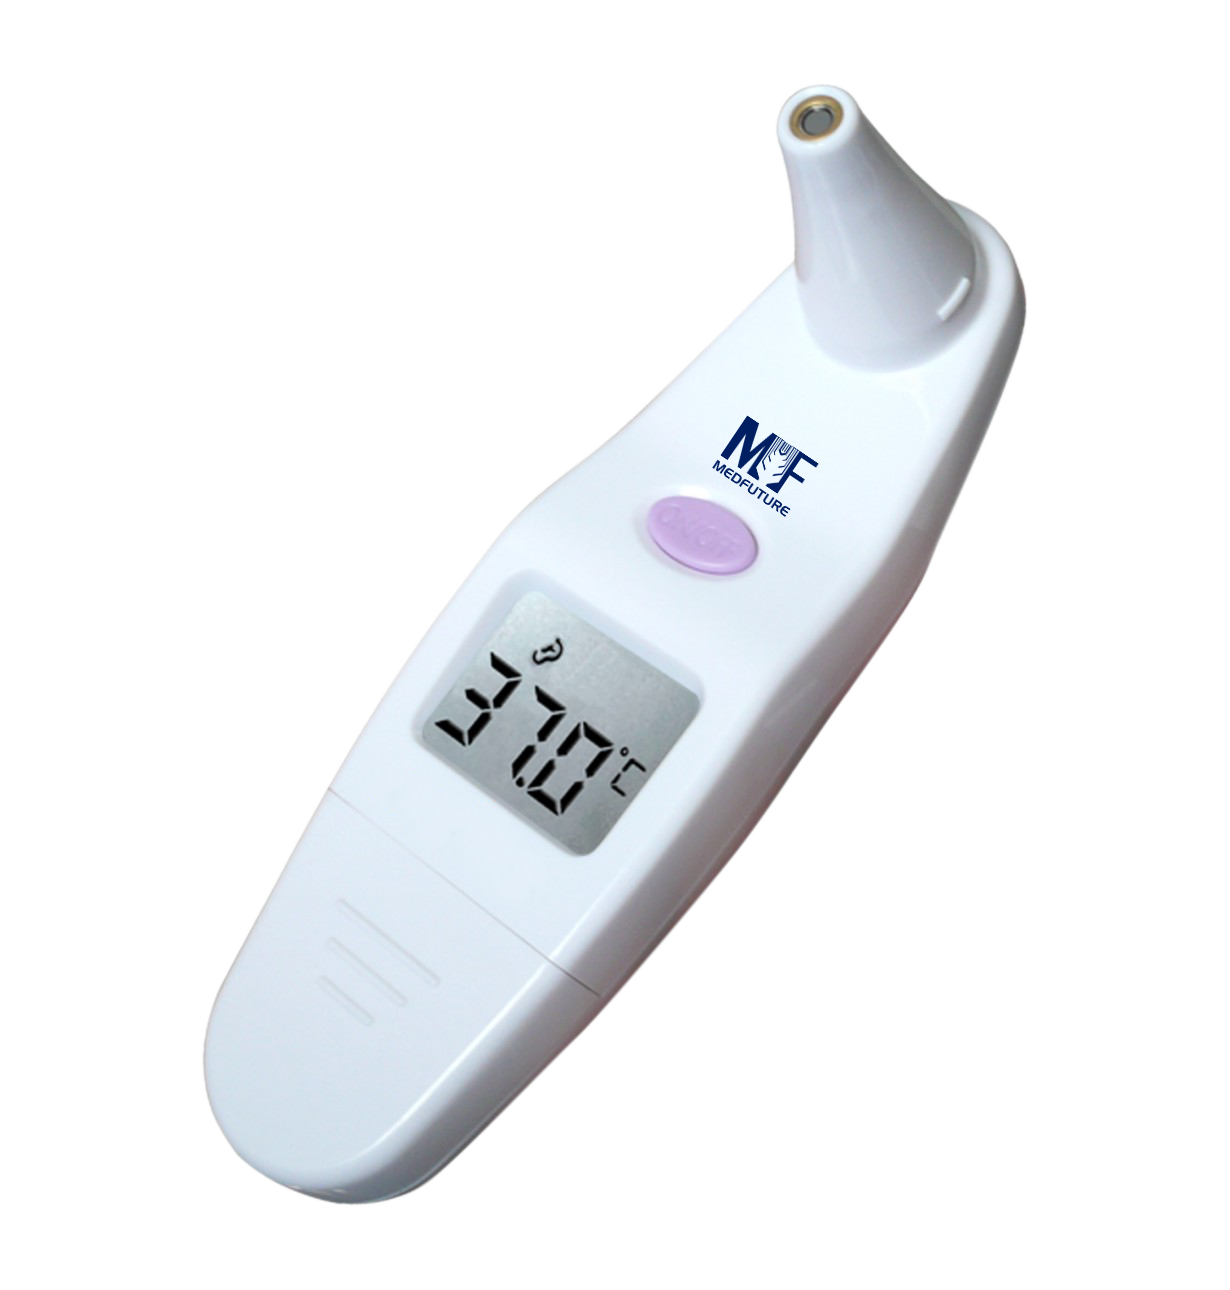 Economical Type Infrared Thermometer